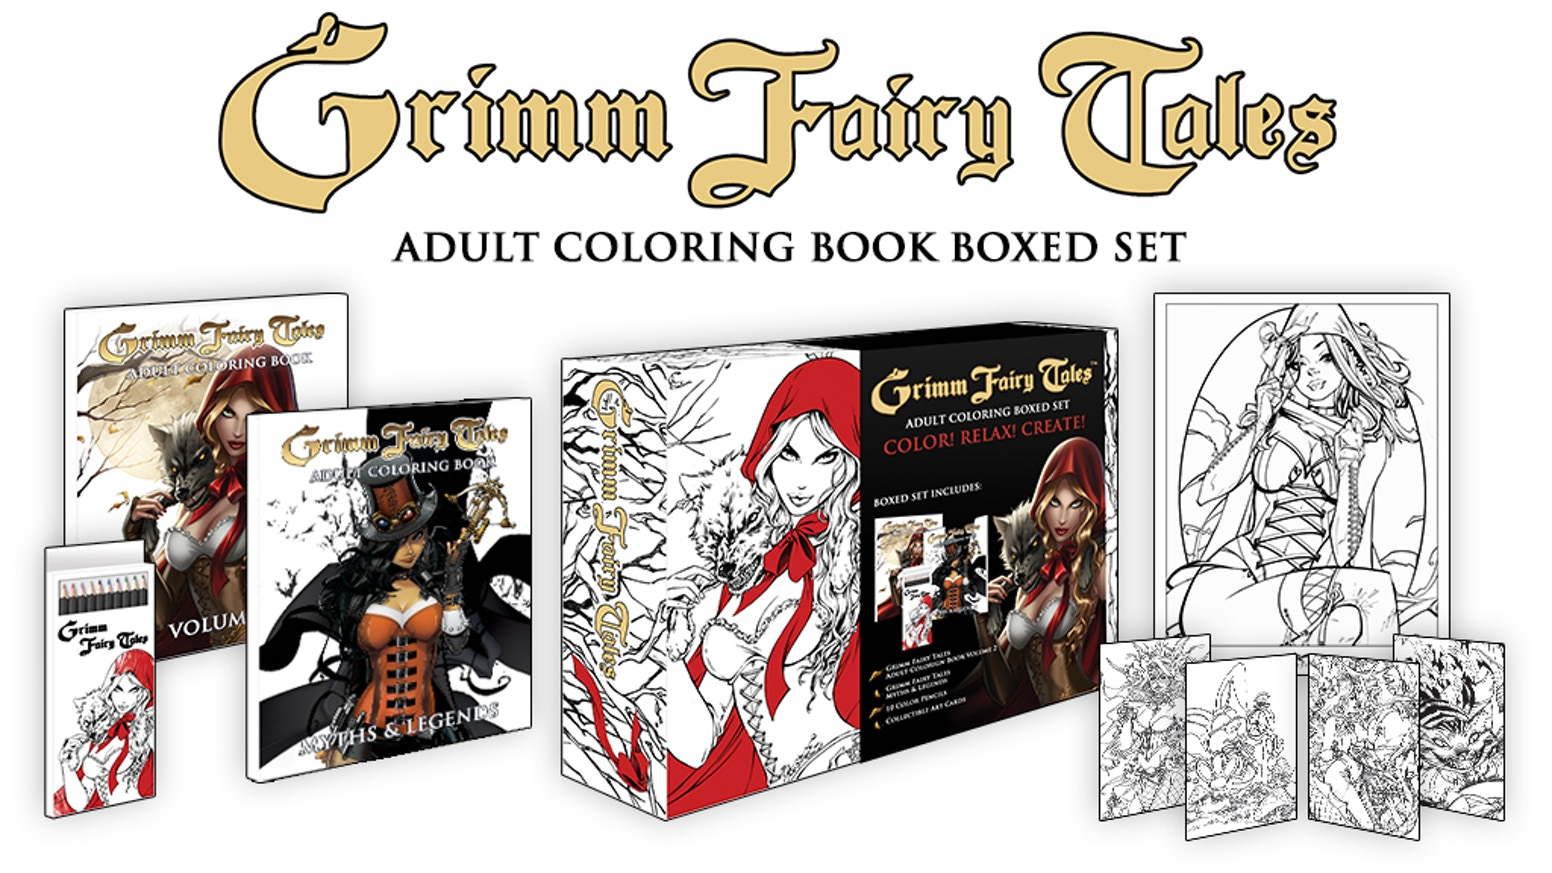 Grimm Fairy Tales Coloring Book Boxed Set